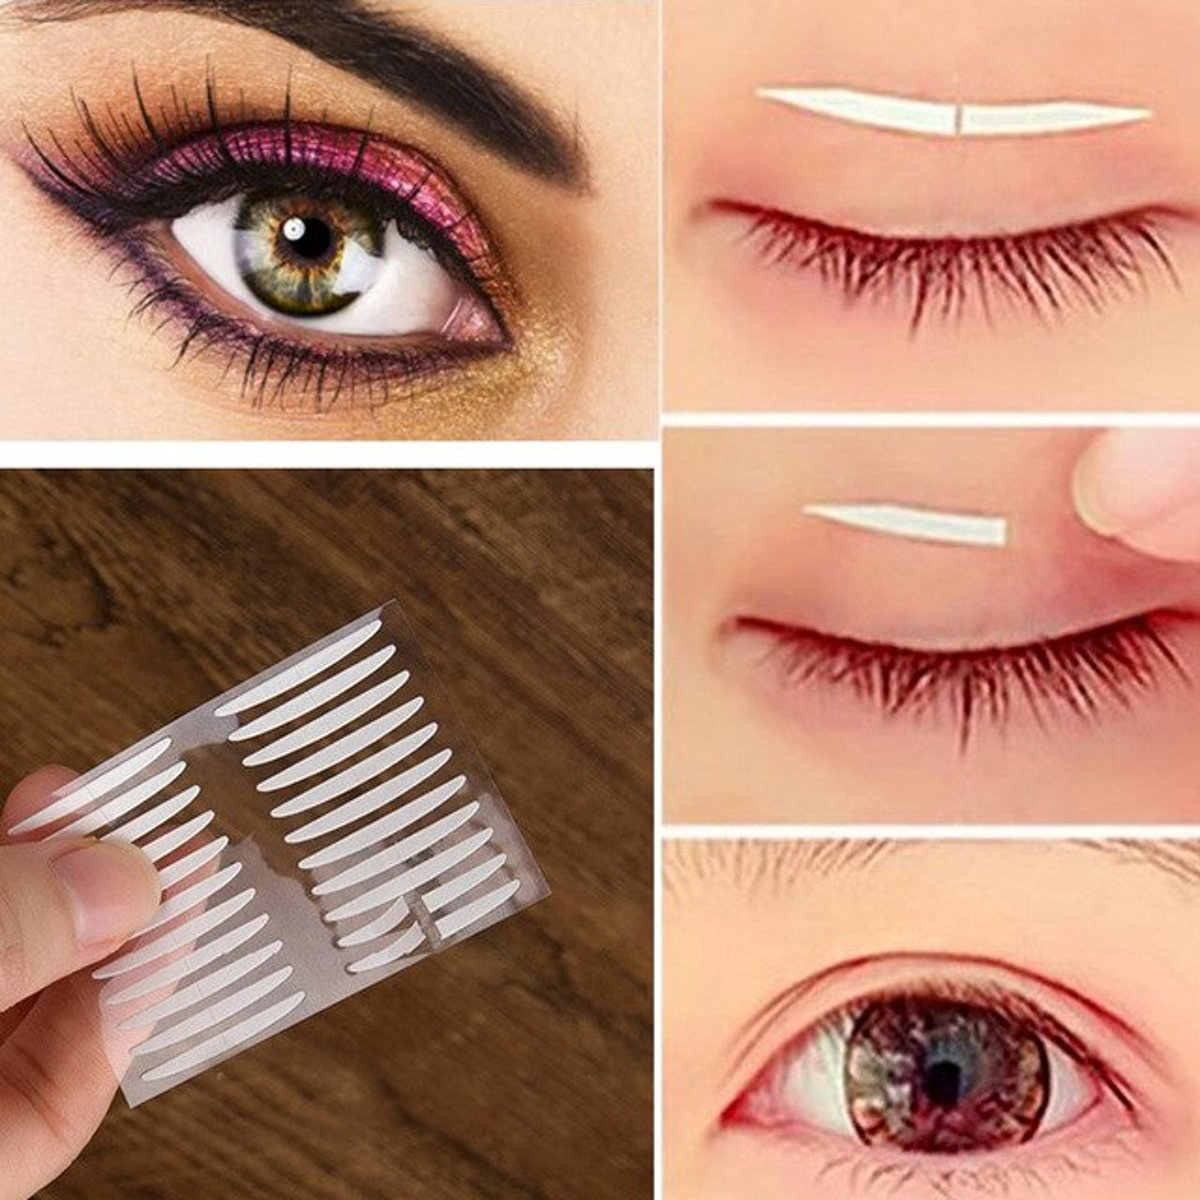 240 Stuks Ooglidstickers | Luxe Ooglidtape | Ooglidcorrectie | Eyelidtape | Tape | Oog Strips | Oog Make-up | Ooglidtape | Oogcorrectie Strips | Eyelid tapes | Oogleden stickers | Ooglid | 240 X Ooglid tape